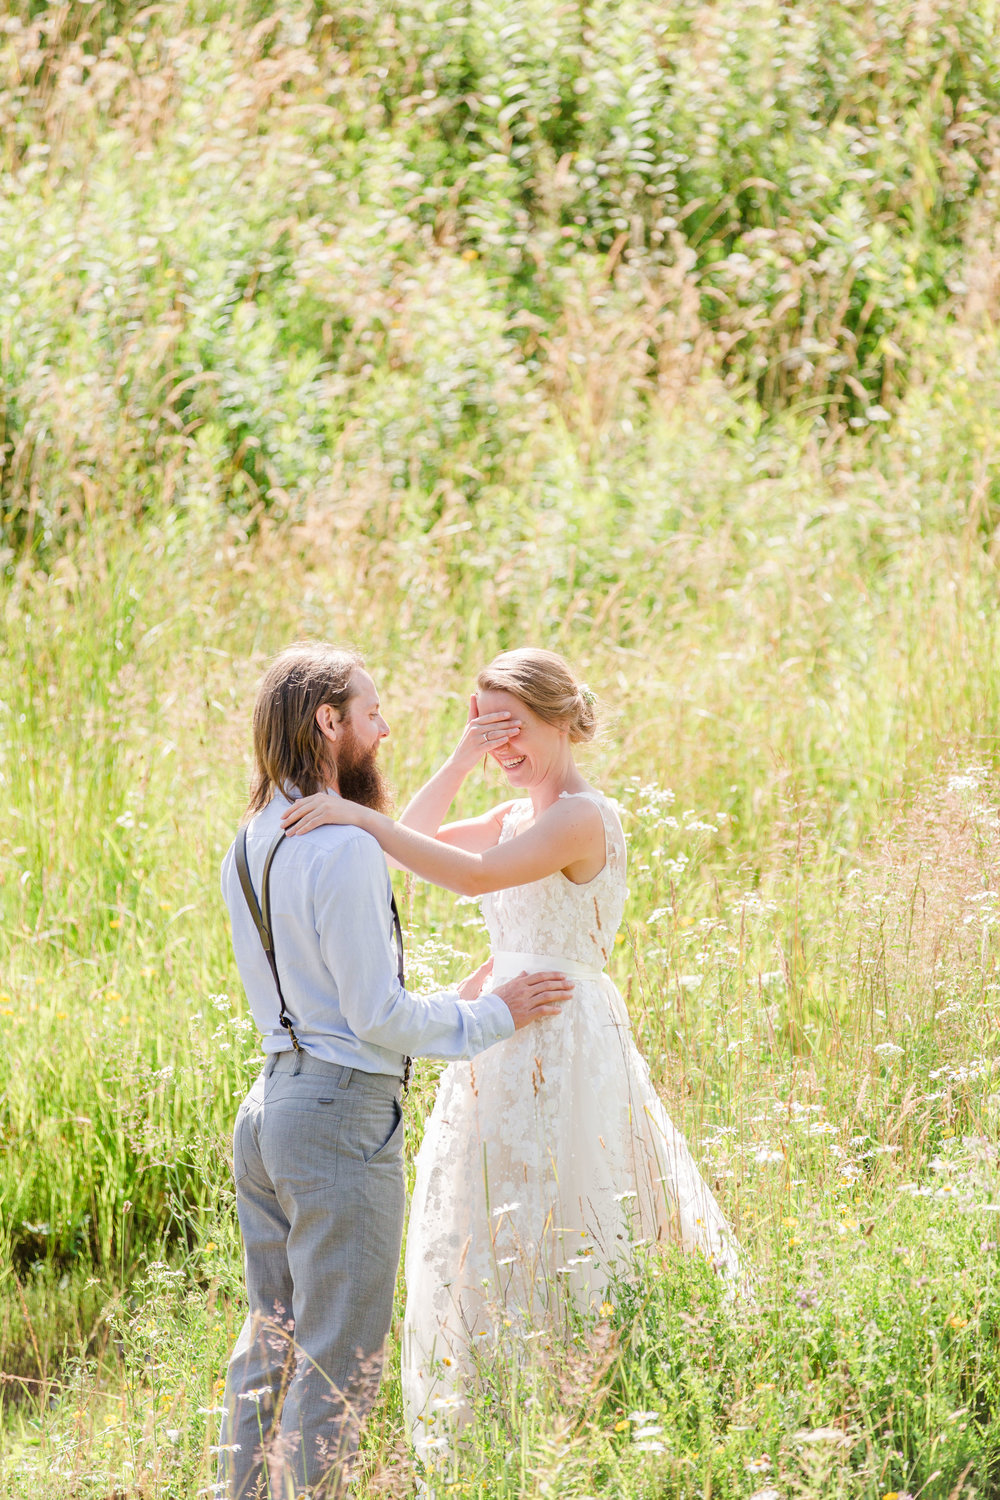 wv snowshoe wedding first look summer hiking-2.jpg